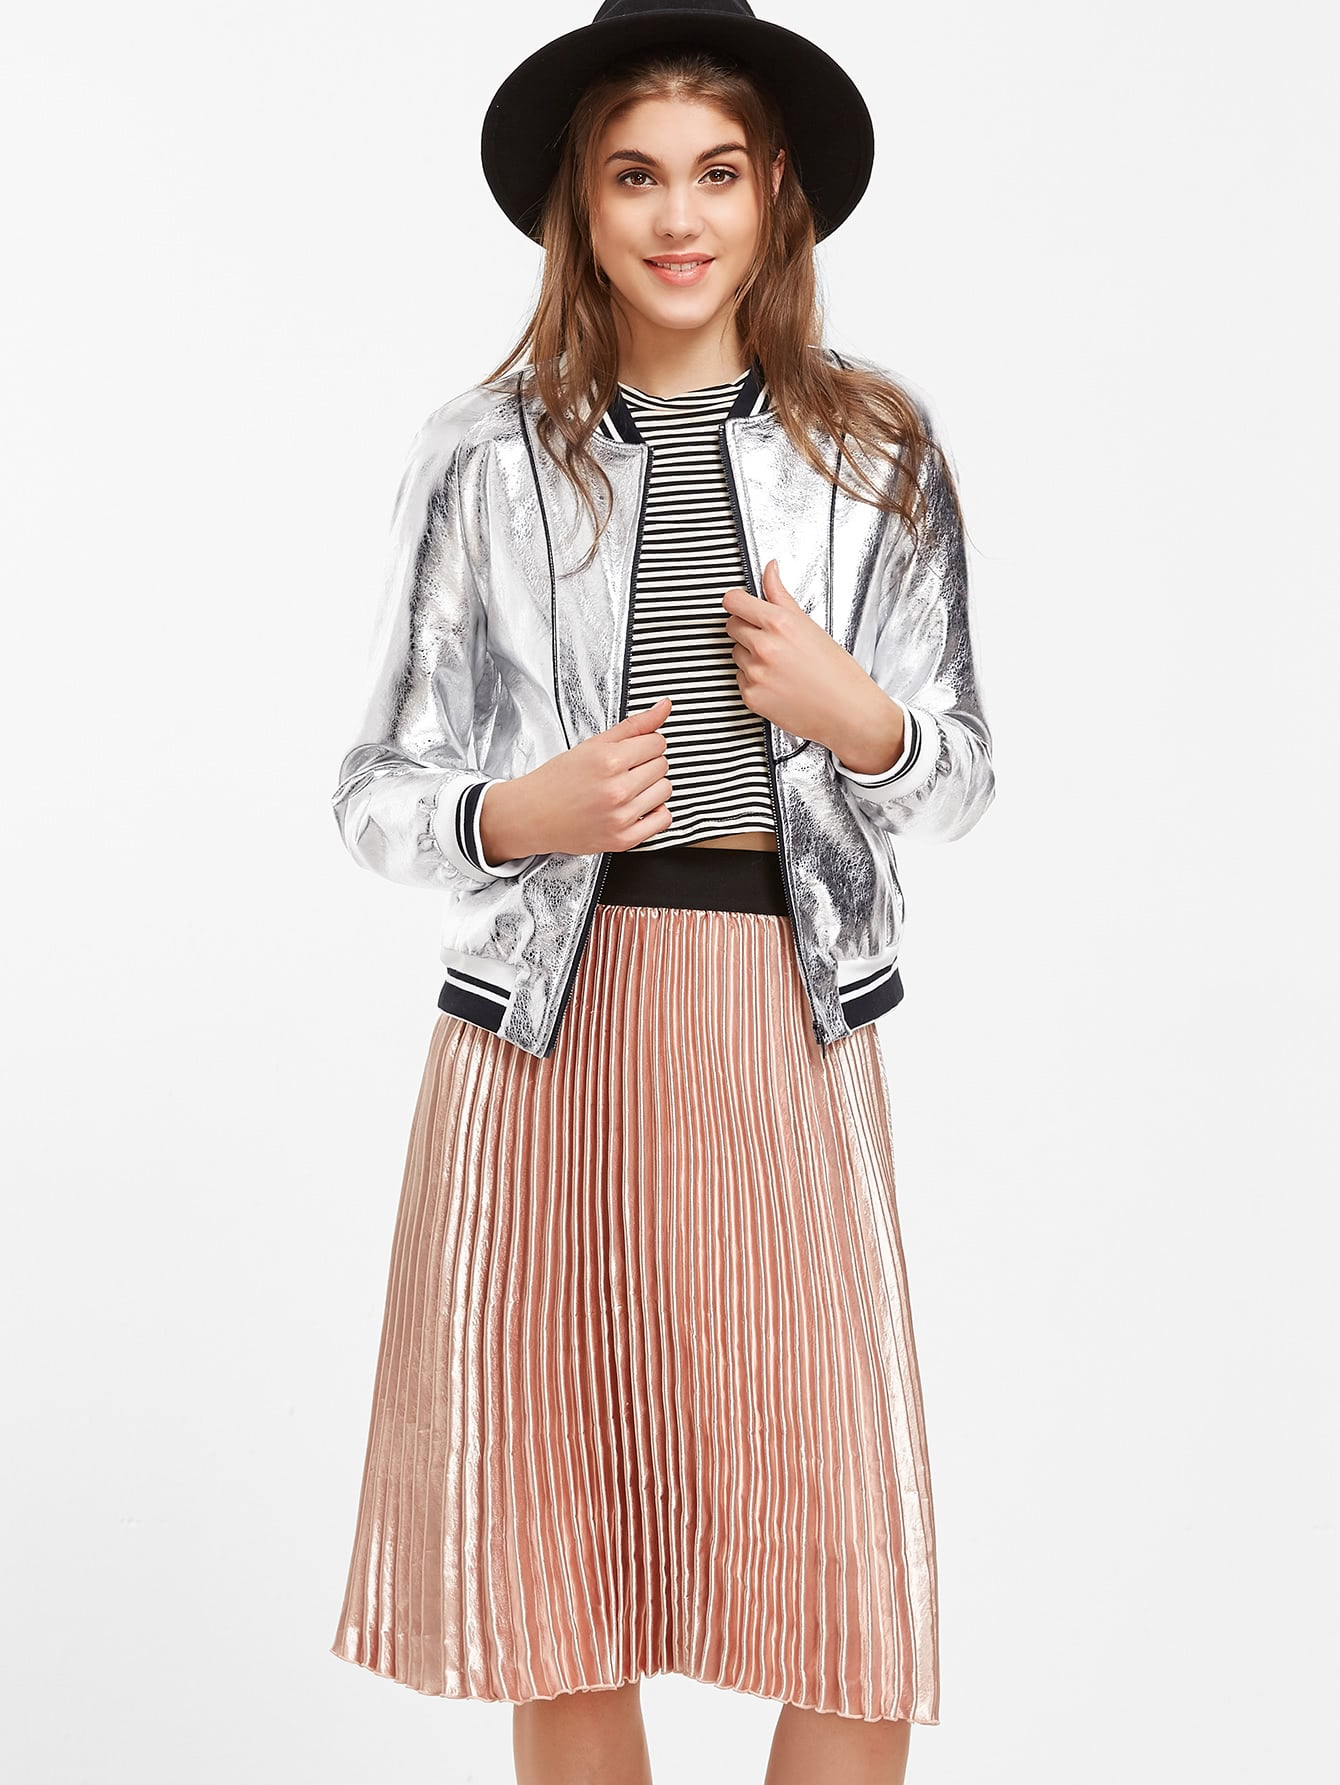 Metallic Silver Faux Leather Striped Trim Bomber Jacket jacket161010702